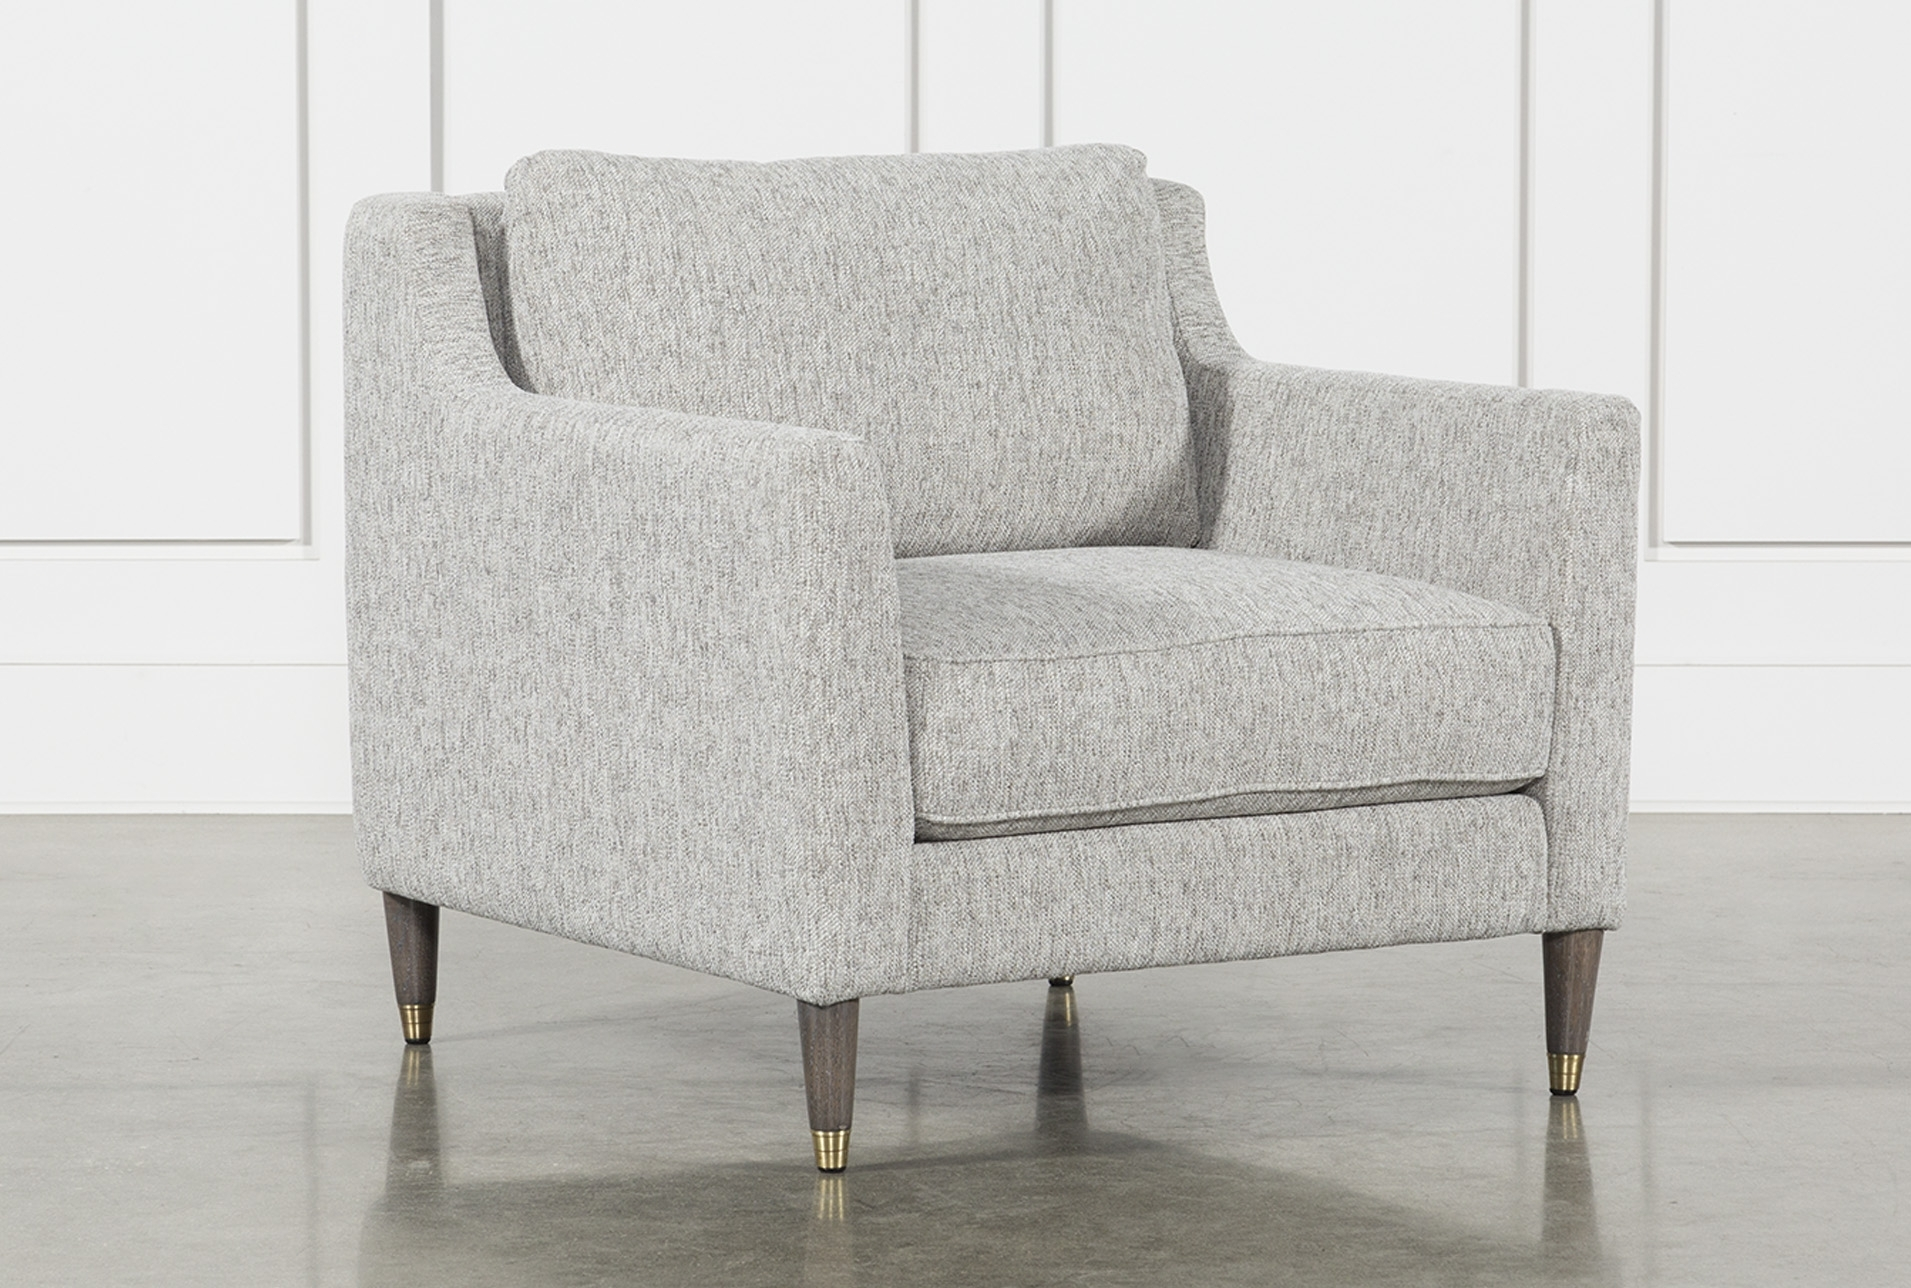 List Of Pinterest Nate Berkus And Images & Nate Berkus And Pictures regarding Soane 3 Piece Sectionals By Nate Berkus And Jeremiah Brent (Image 3 of 30)